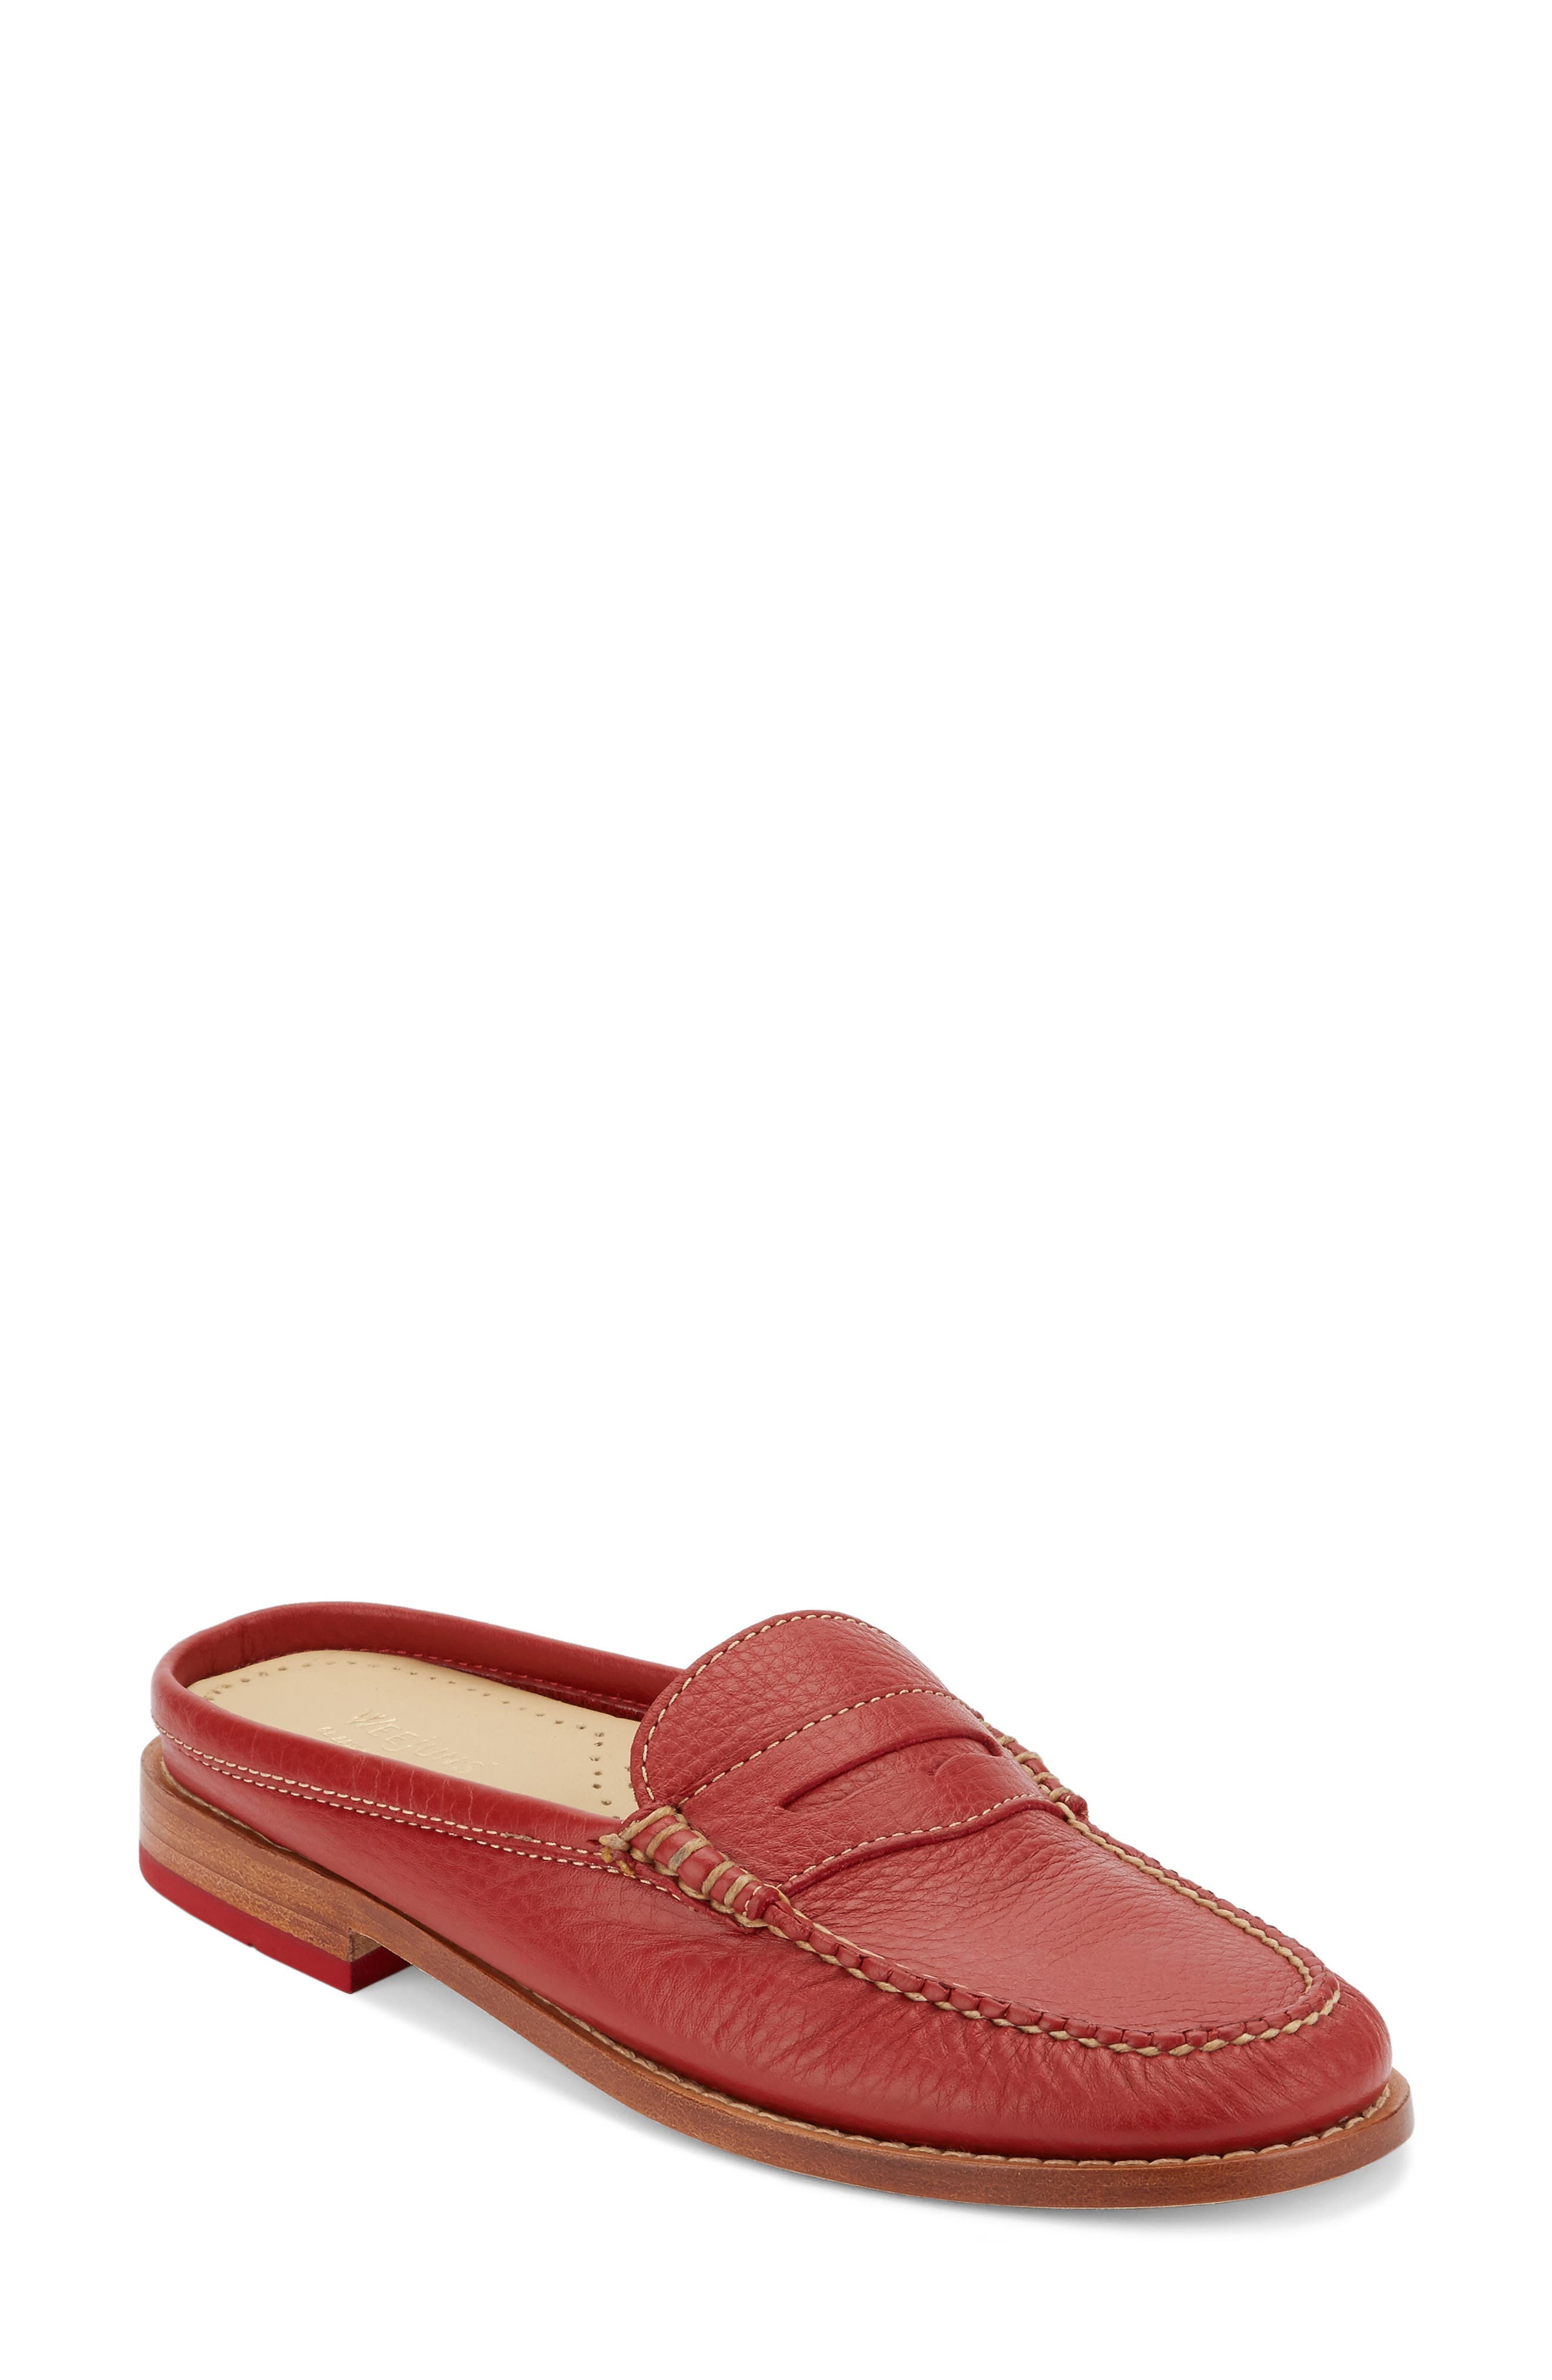 Wynn Loafer Mule,                             Main thumbnail 10, color,